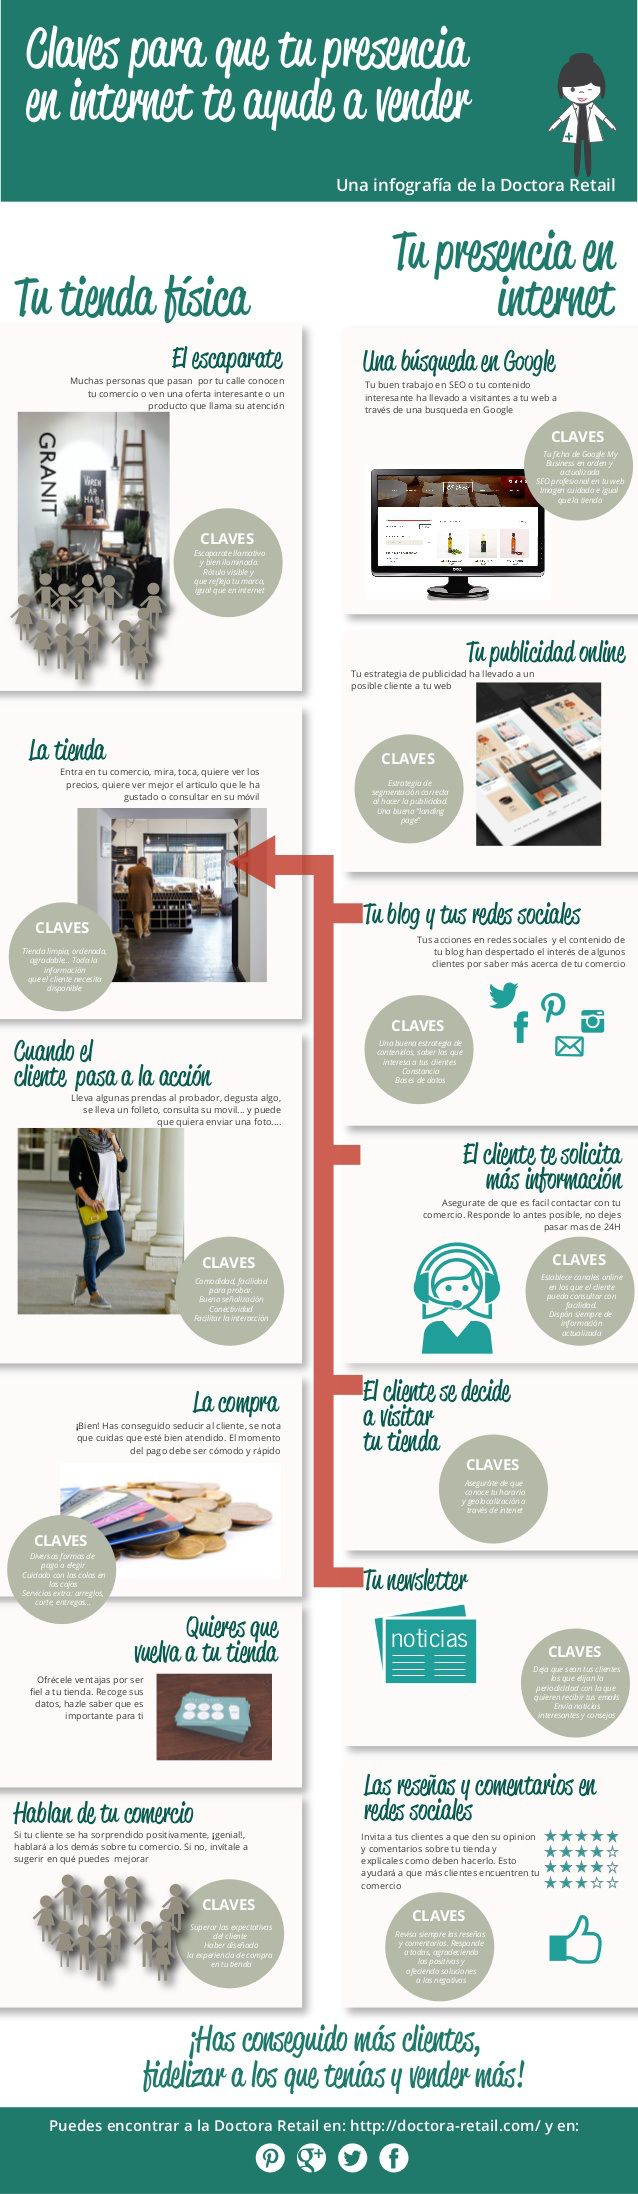 Claves para que tu presencia en Internet te ayude a vender #infografia #infographic #marketing